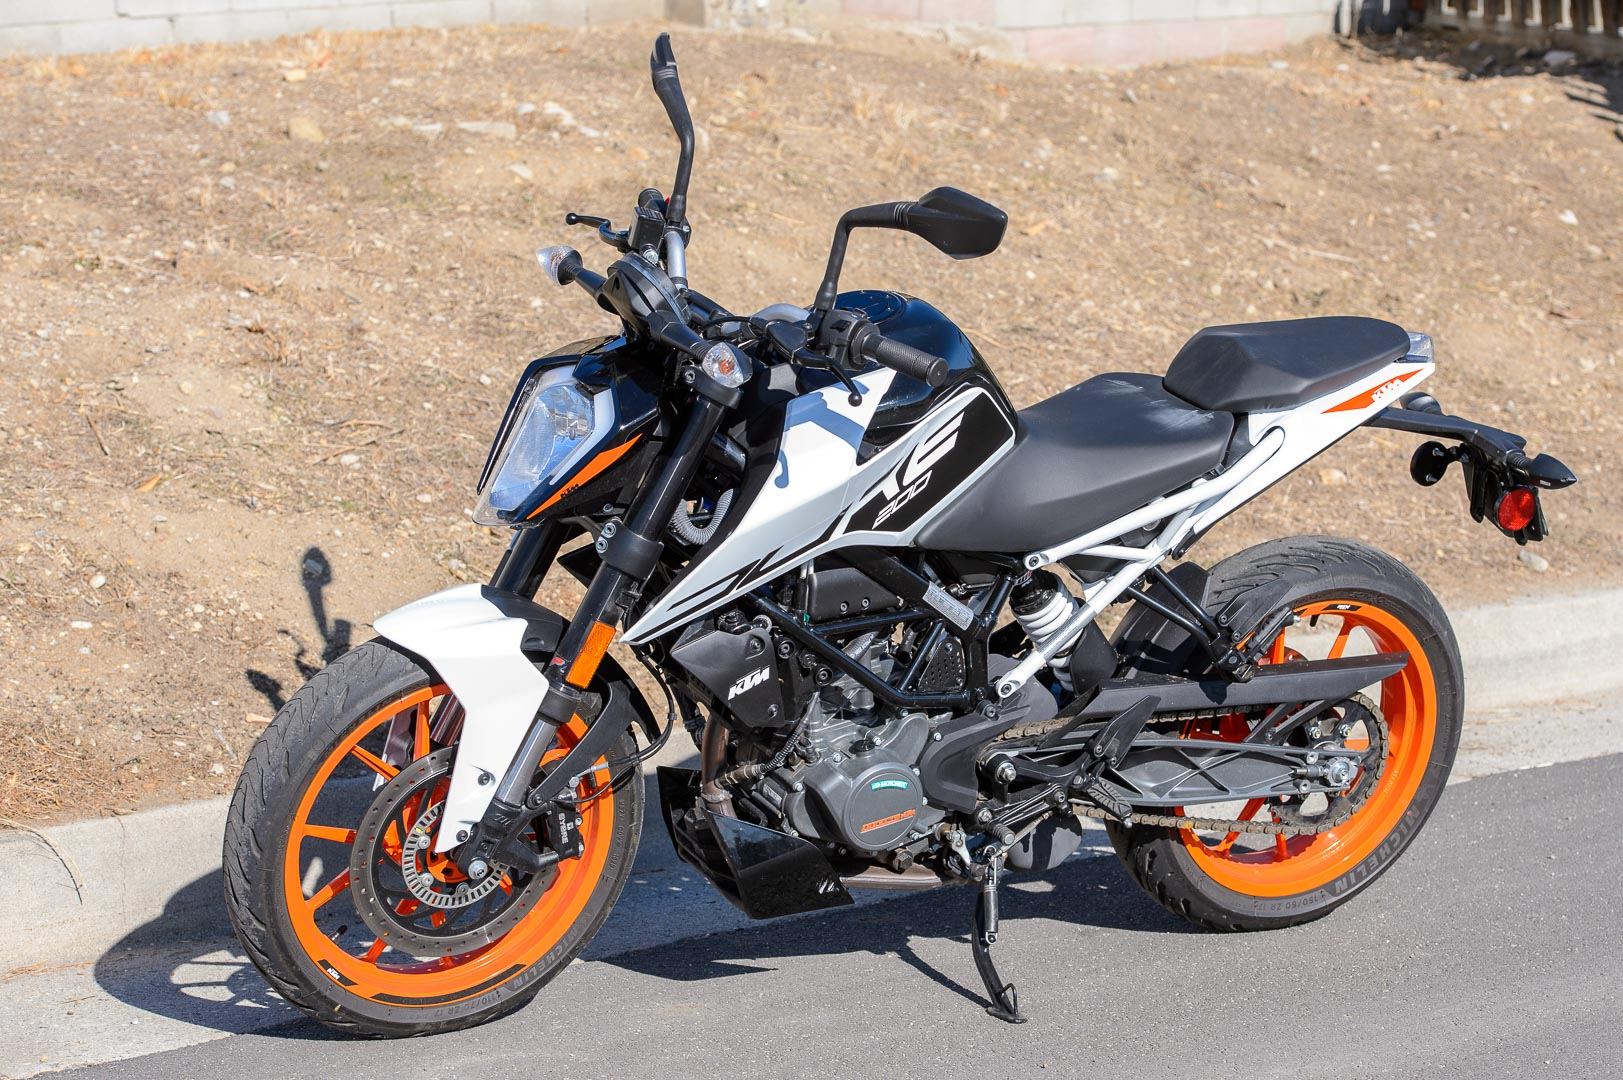 2020 KTM 200 Duke Test: MSRP